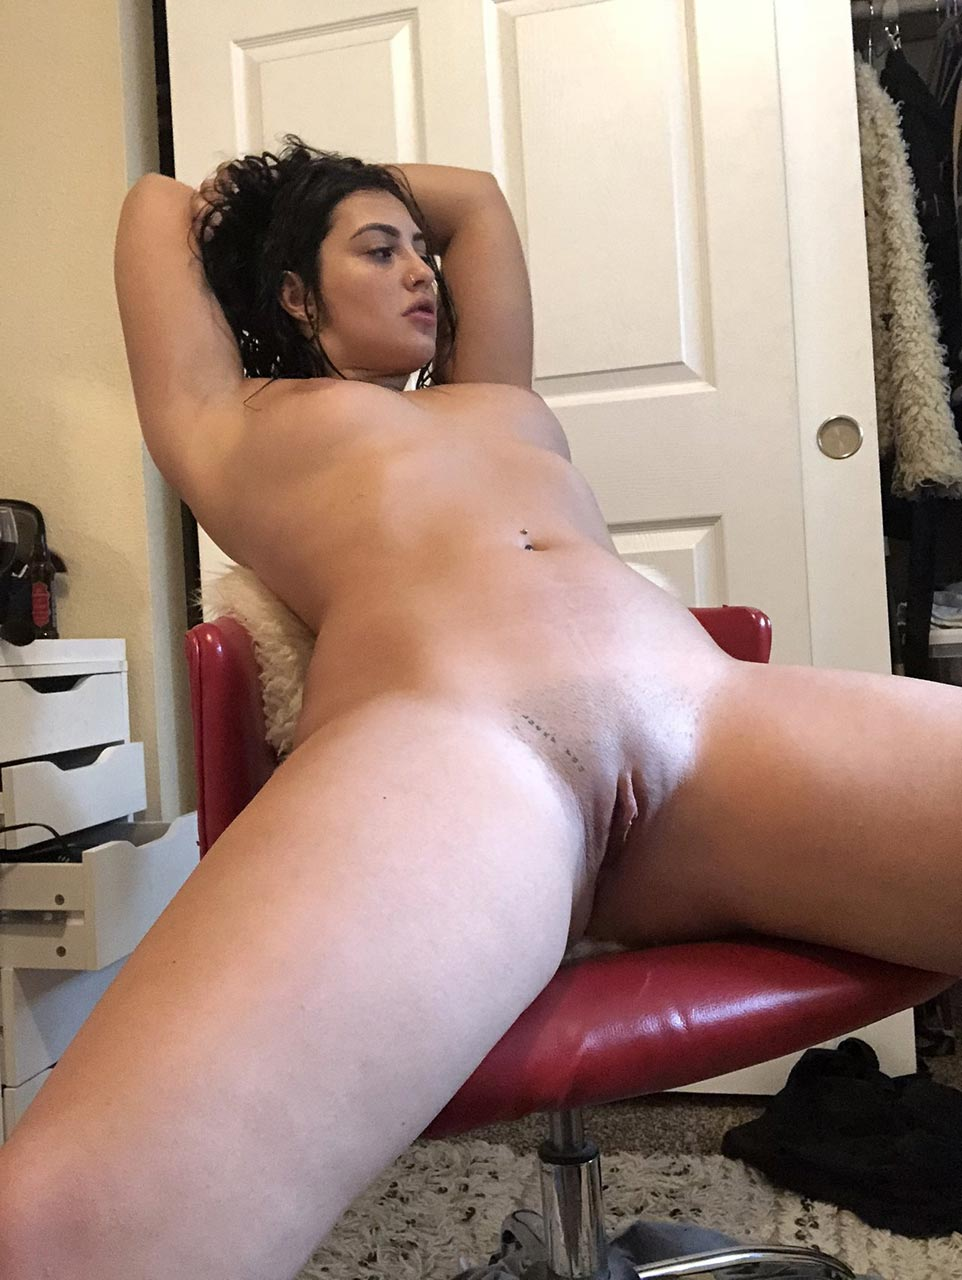 Erotic Pictures Free trimmed pussy pics